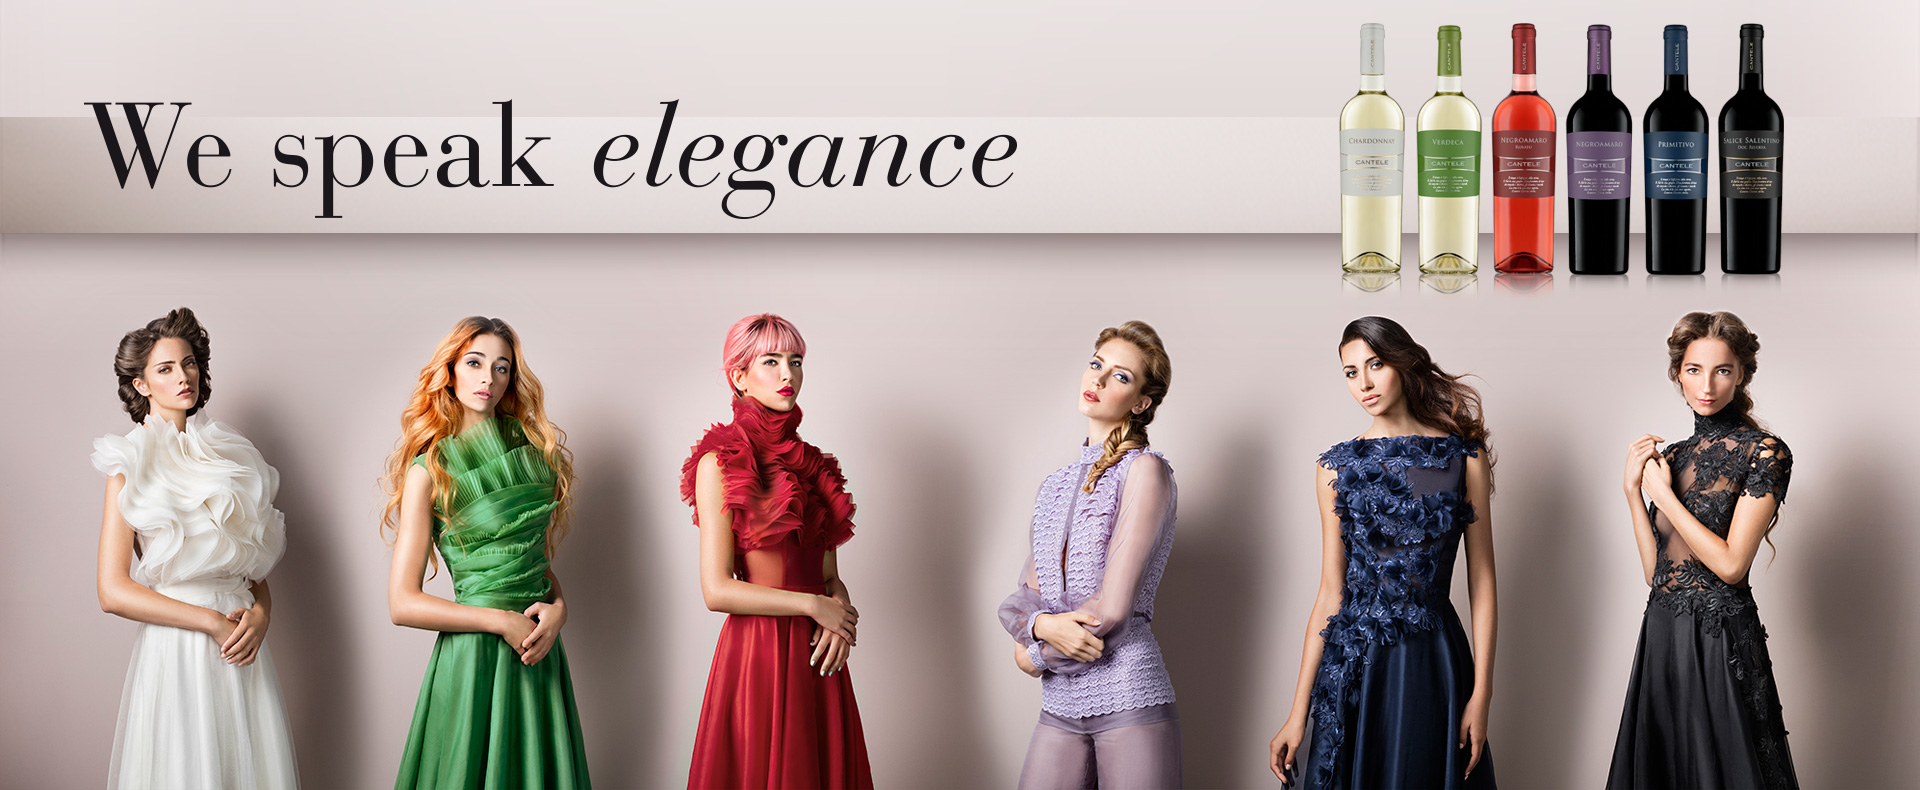 The colors of elegance